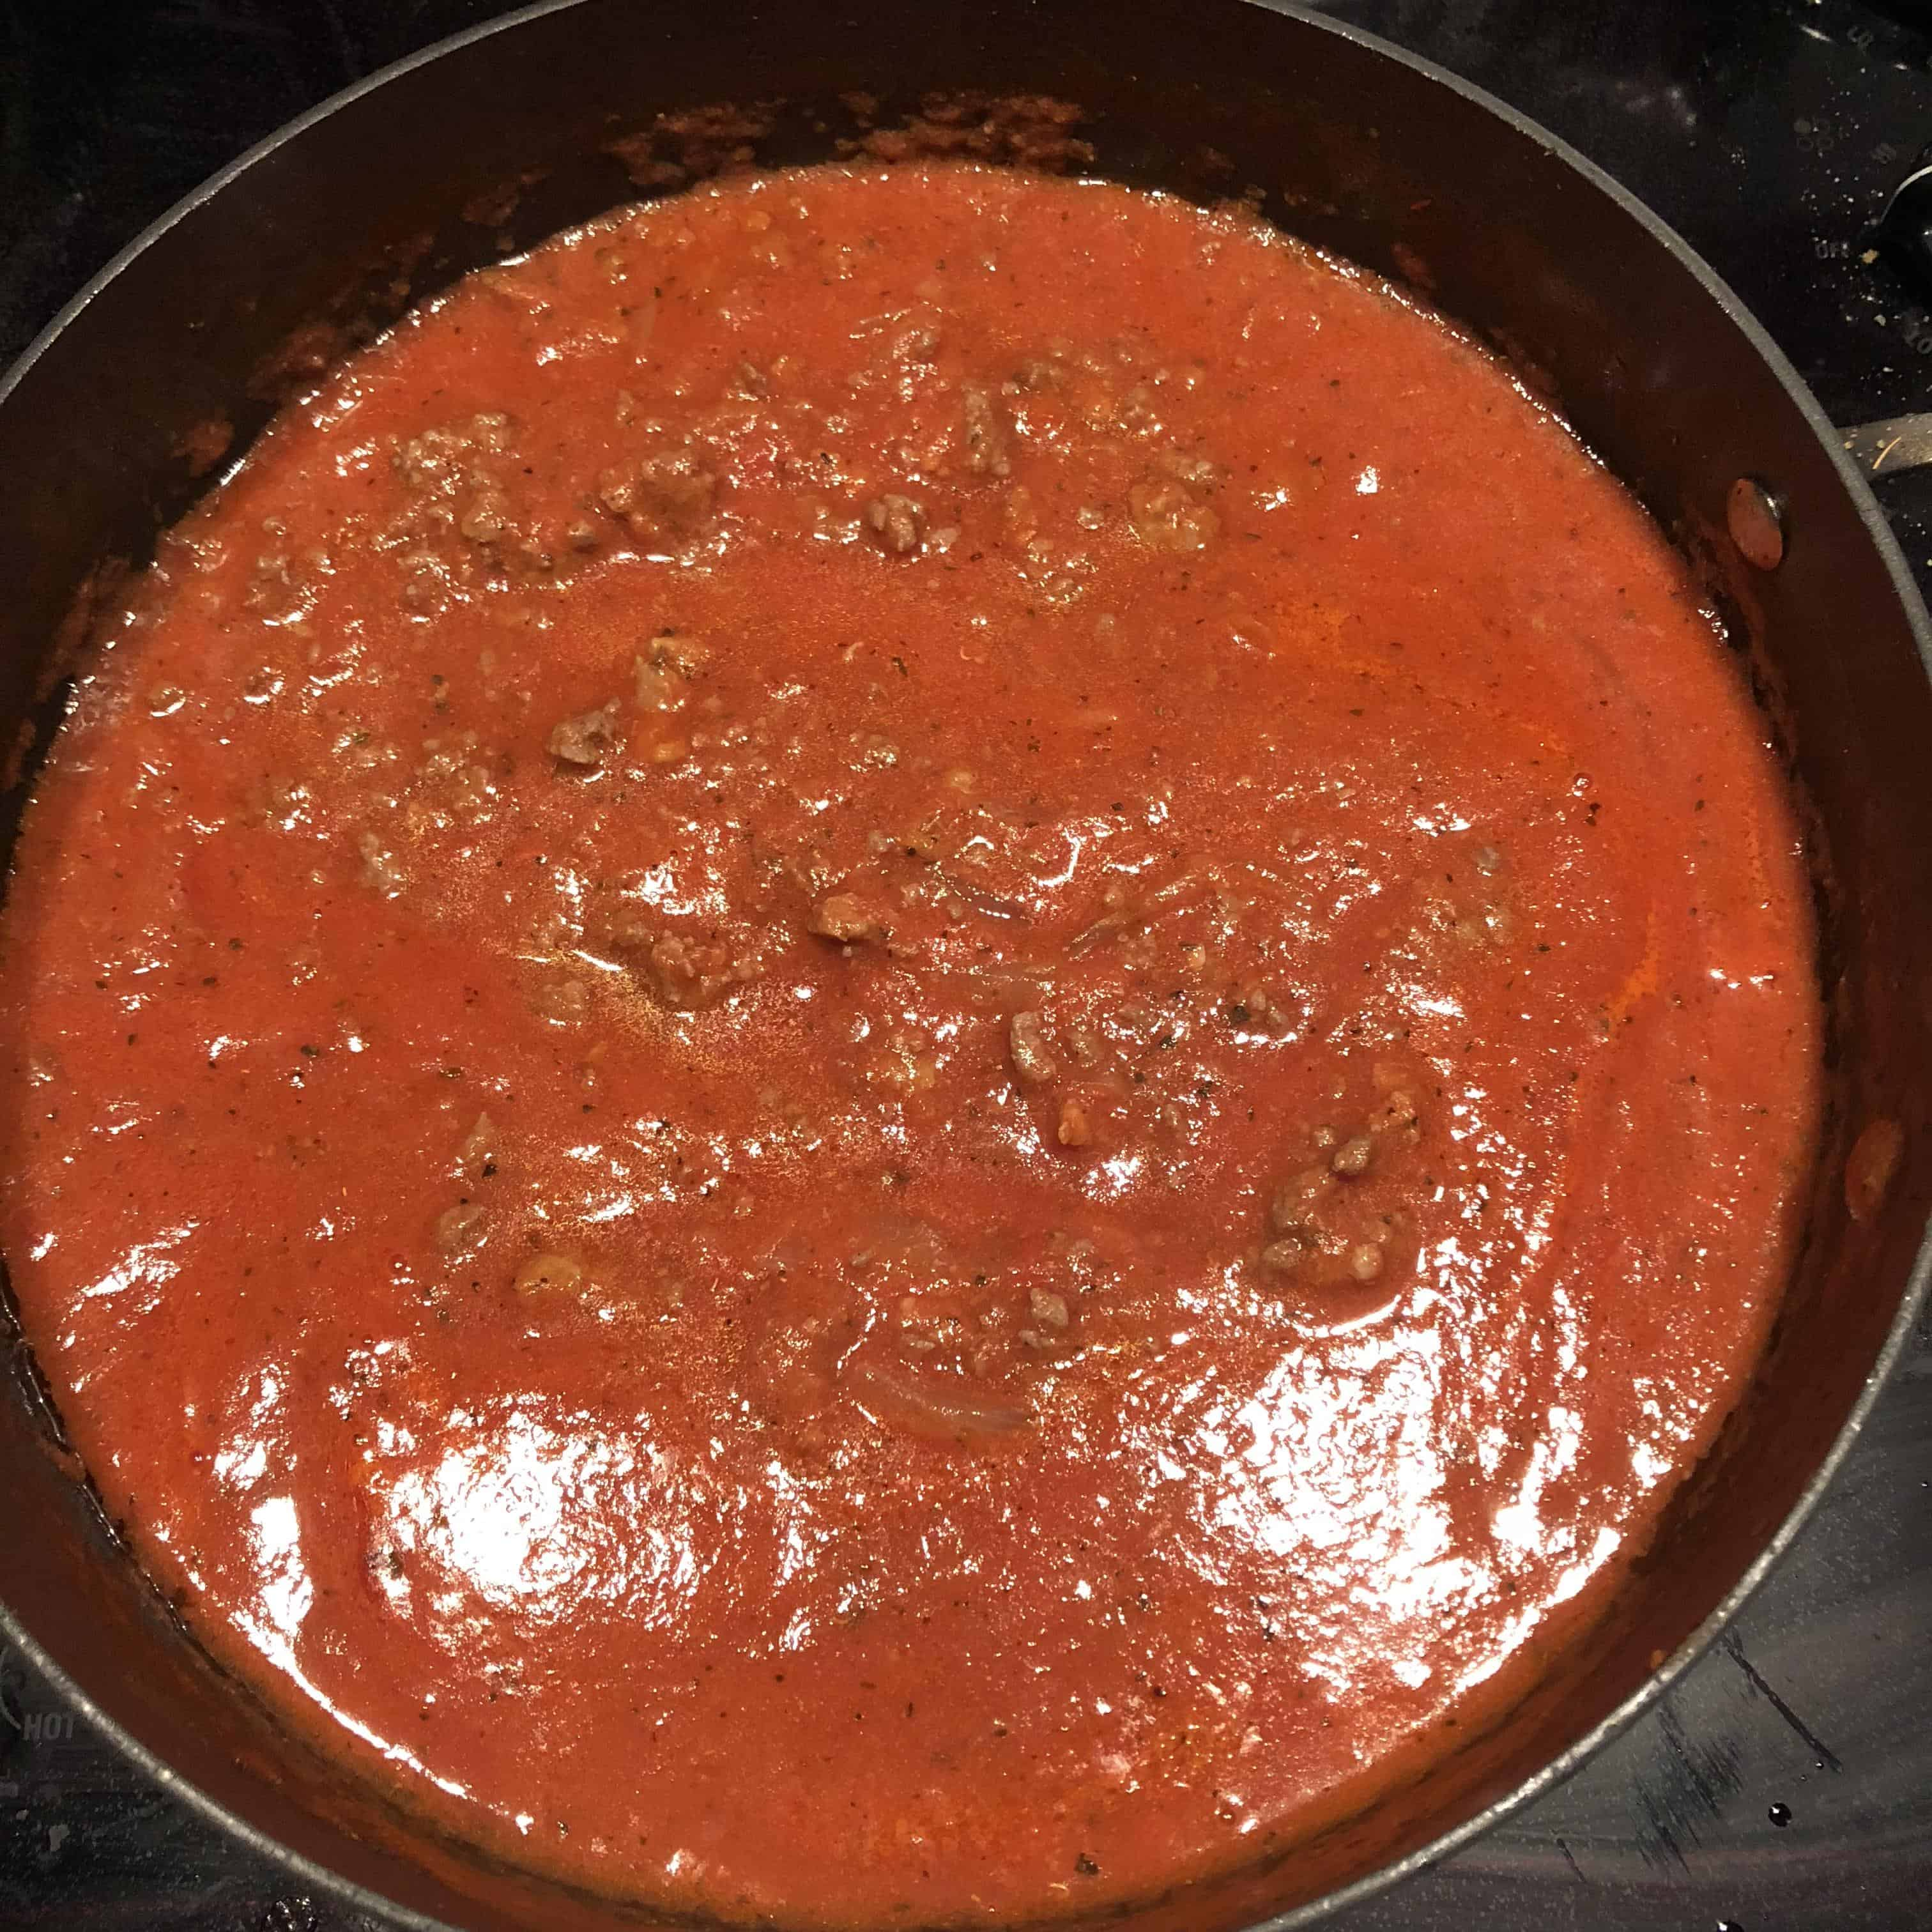 Swoon Talent Blog - Rachael Ray's Producer Joanna Sims' Rigatoni Bolognese